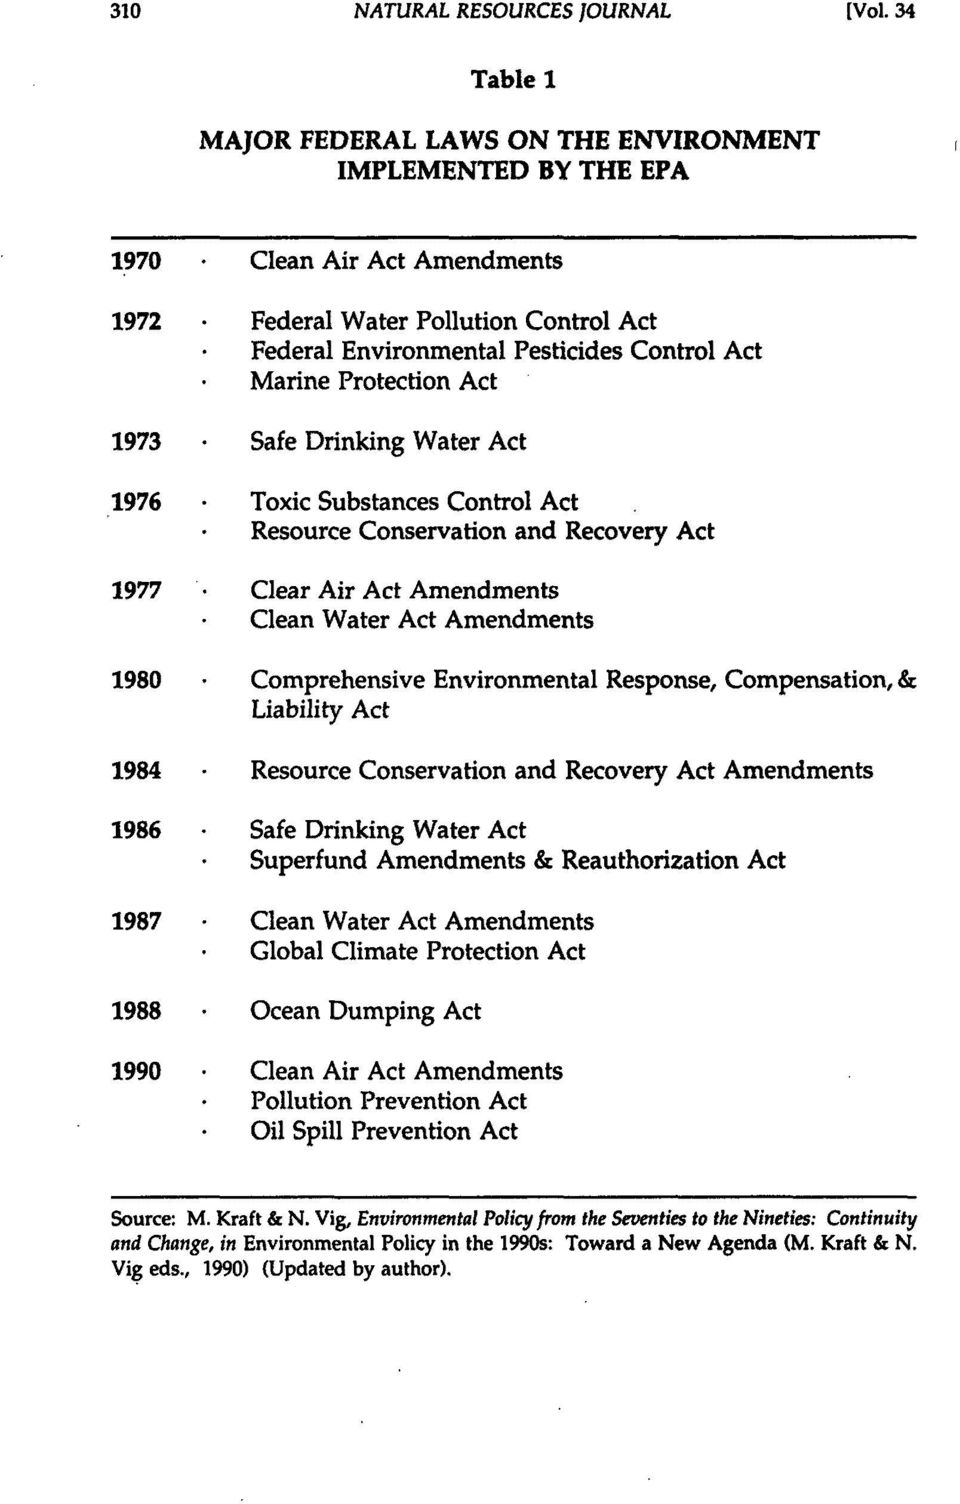 Protection Act 1973 Safe Drinking Water Act 1976 * Toxic Substances Control Act Resource Conservation and Recovery Act 1977 Clear Air Act Amendments Clean Water Act Amendments 1980 Comprehensive